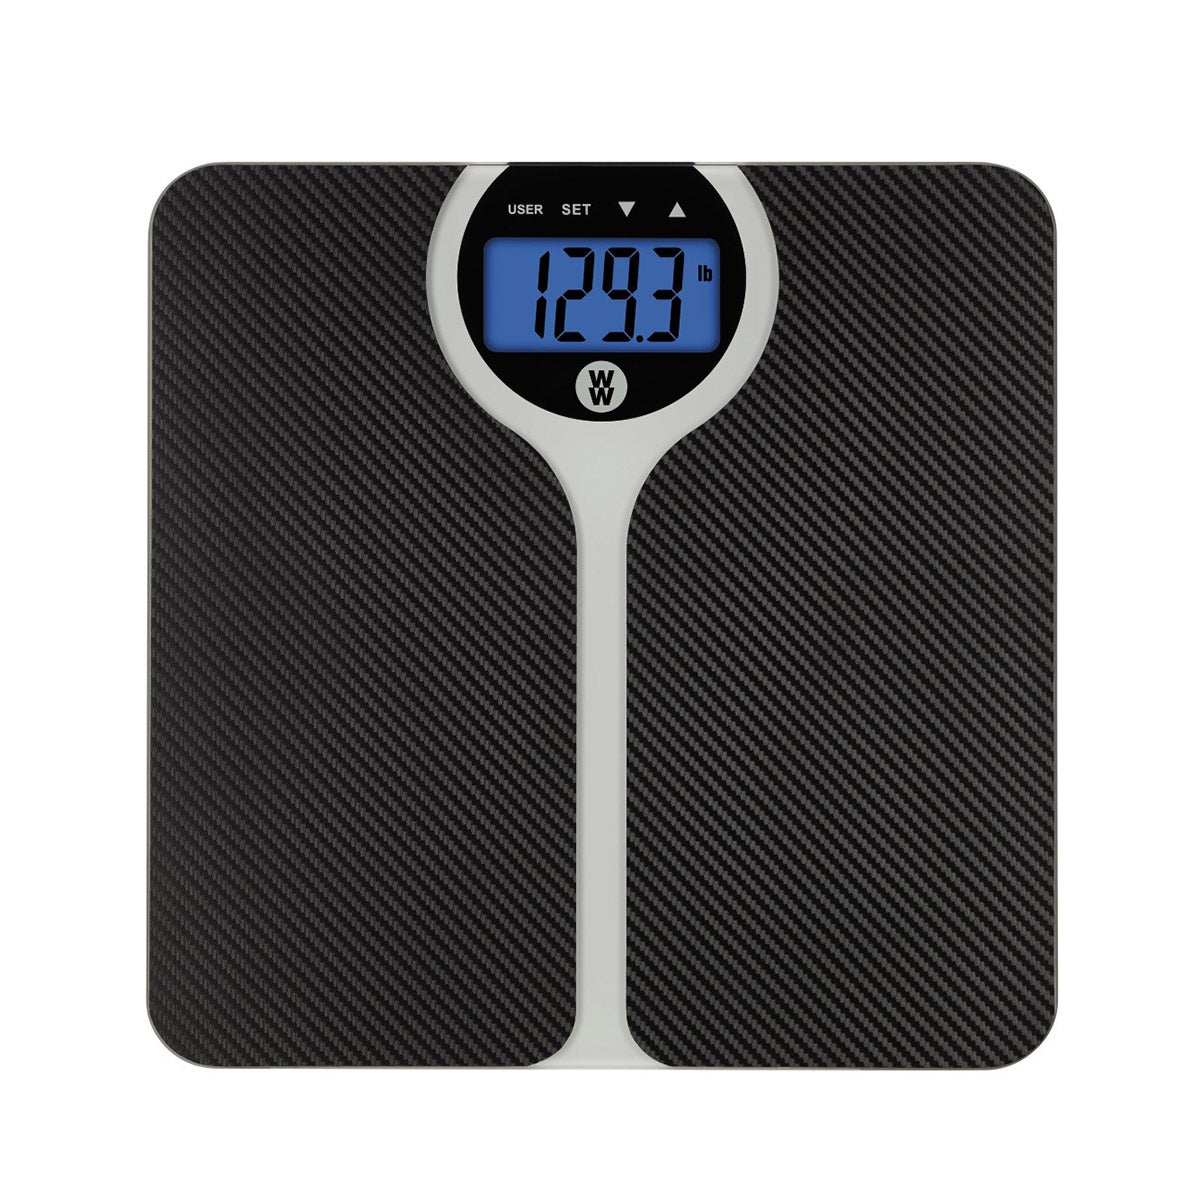 WW Digital Weight Scale